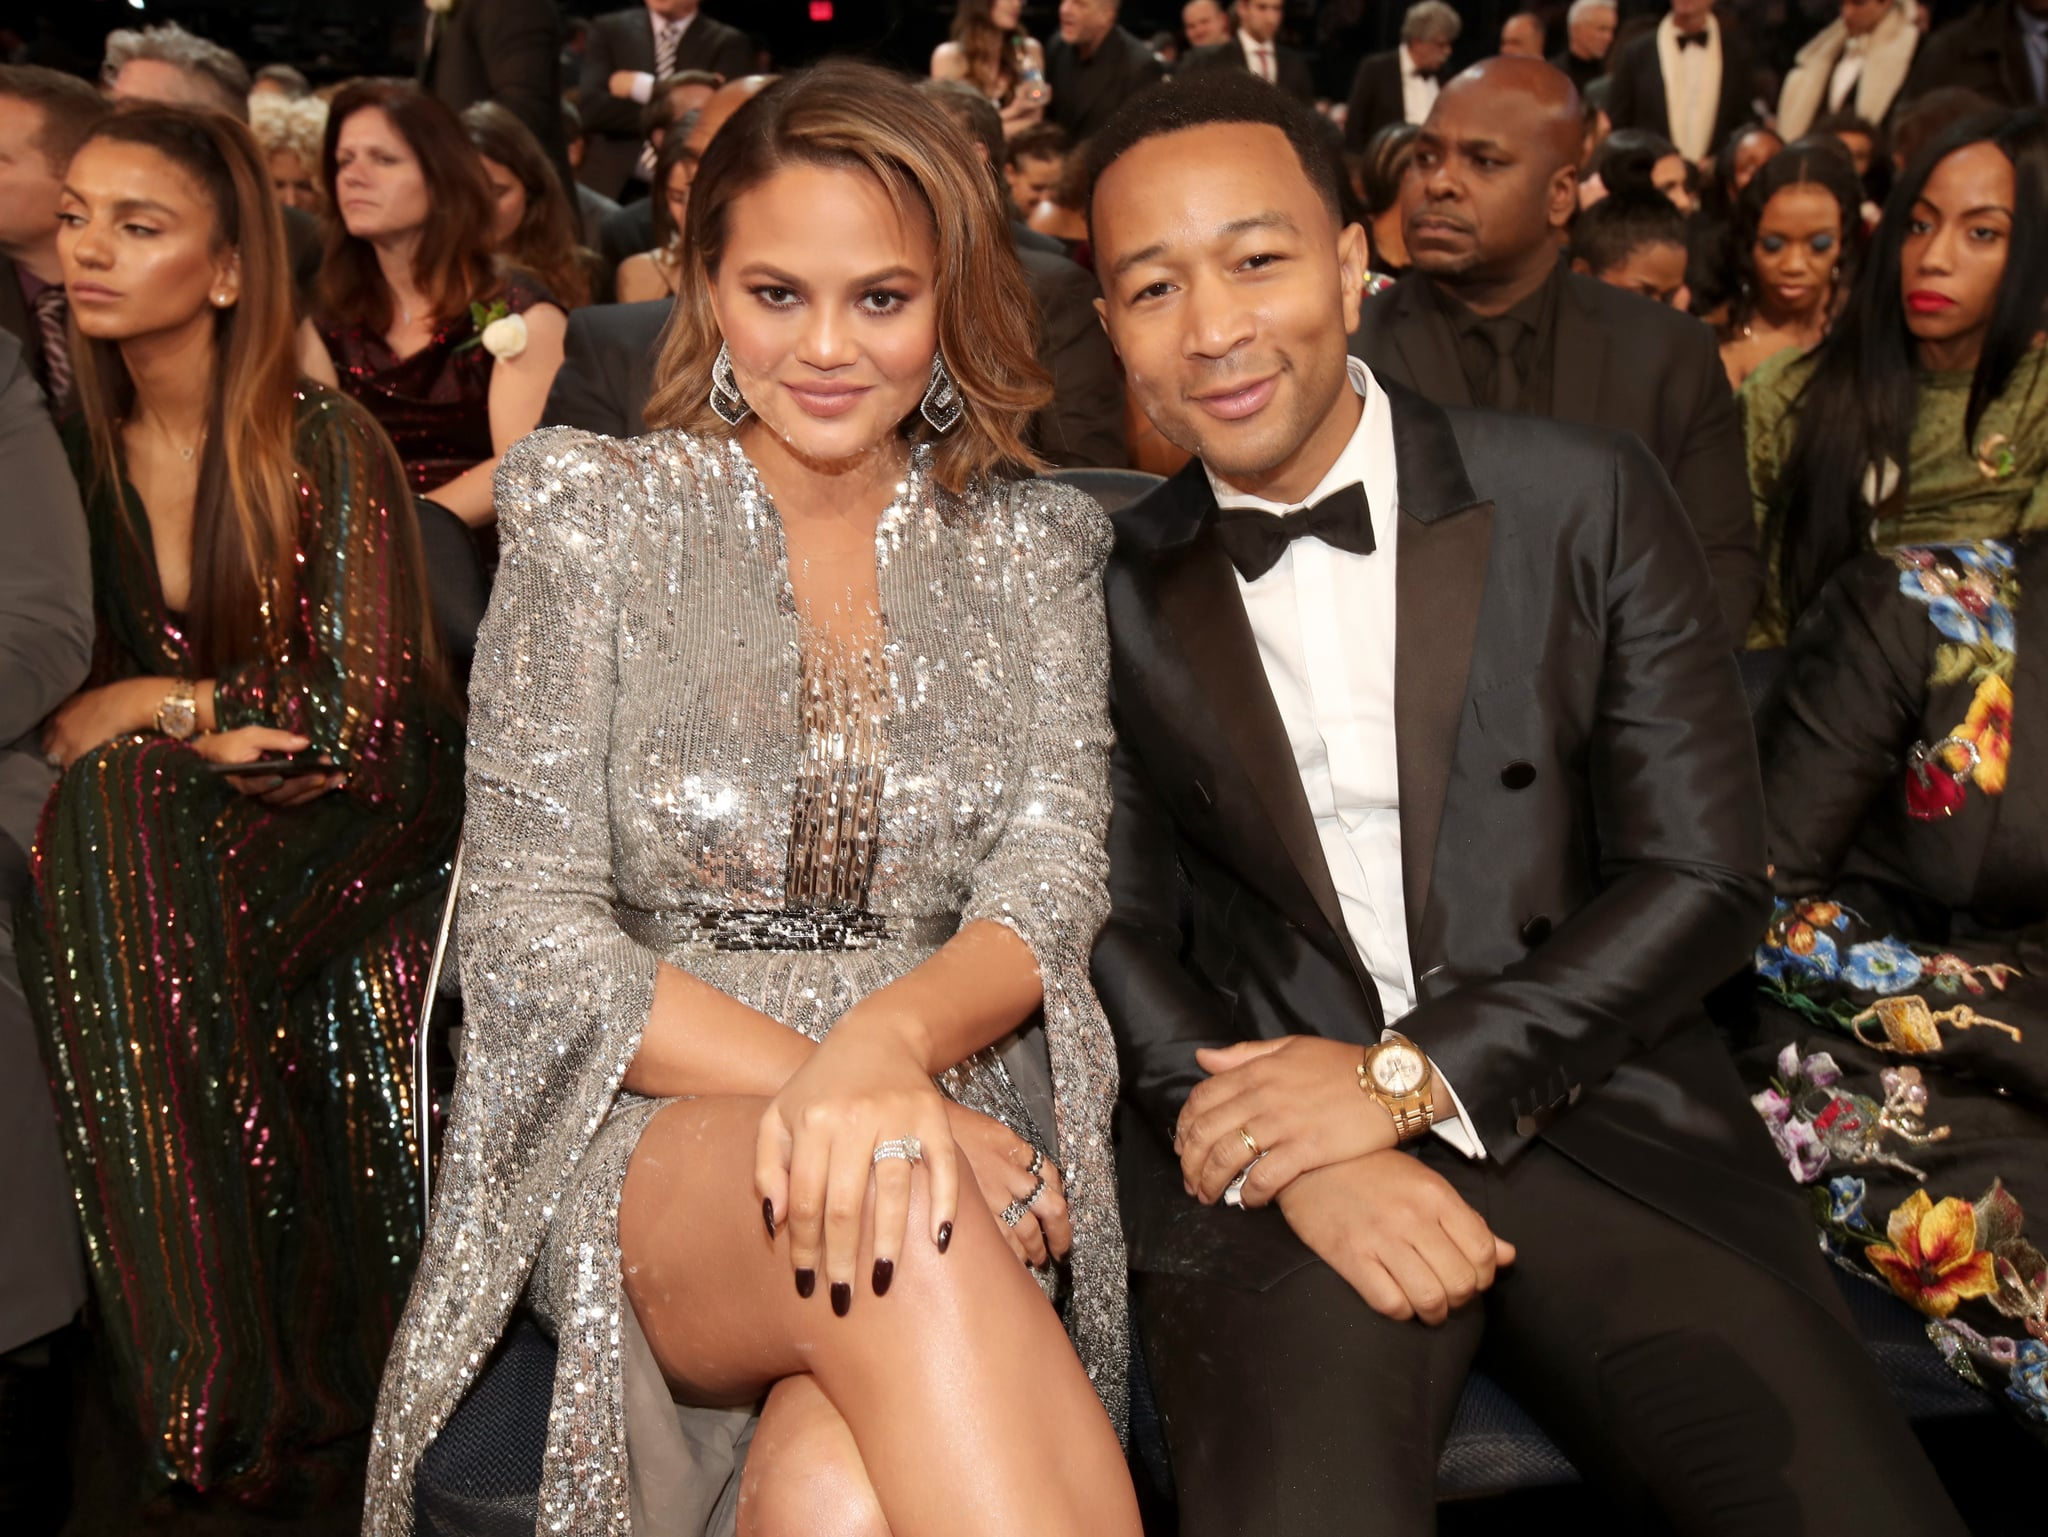 NEW YORK, NY - JANUARY 28:  Model Chrissy Teigen (L) and recording artist John Legend attend the 60th Annual GRAMMY Awards at Madison Square Garden on January 28, 2018 in New York City.  (Photo by Christopher Polk/Getty Images for NARAS)